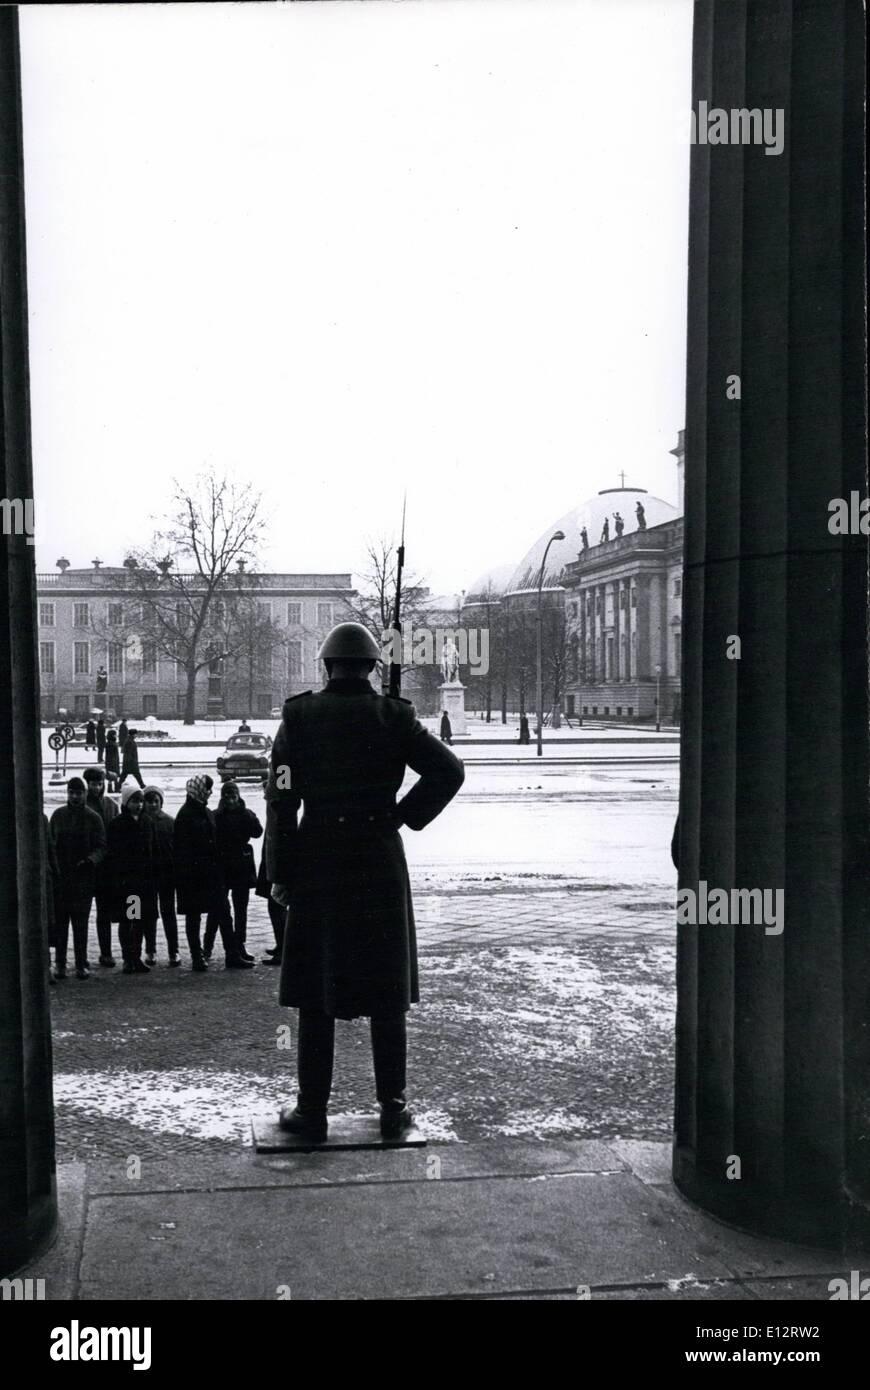 Feb. 25, 2012 - East Berlin Guard at the memorial for the Victims of fascism & militarism.  US Stock Photo